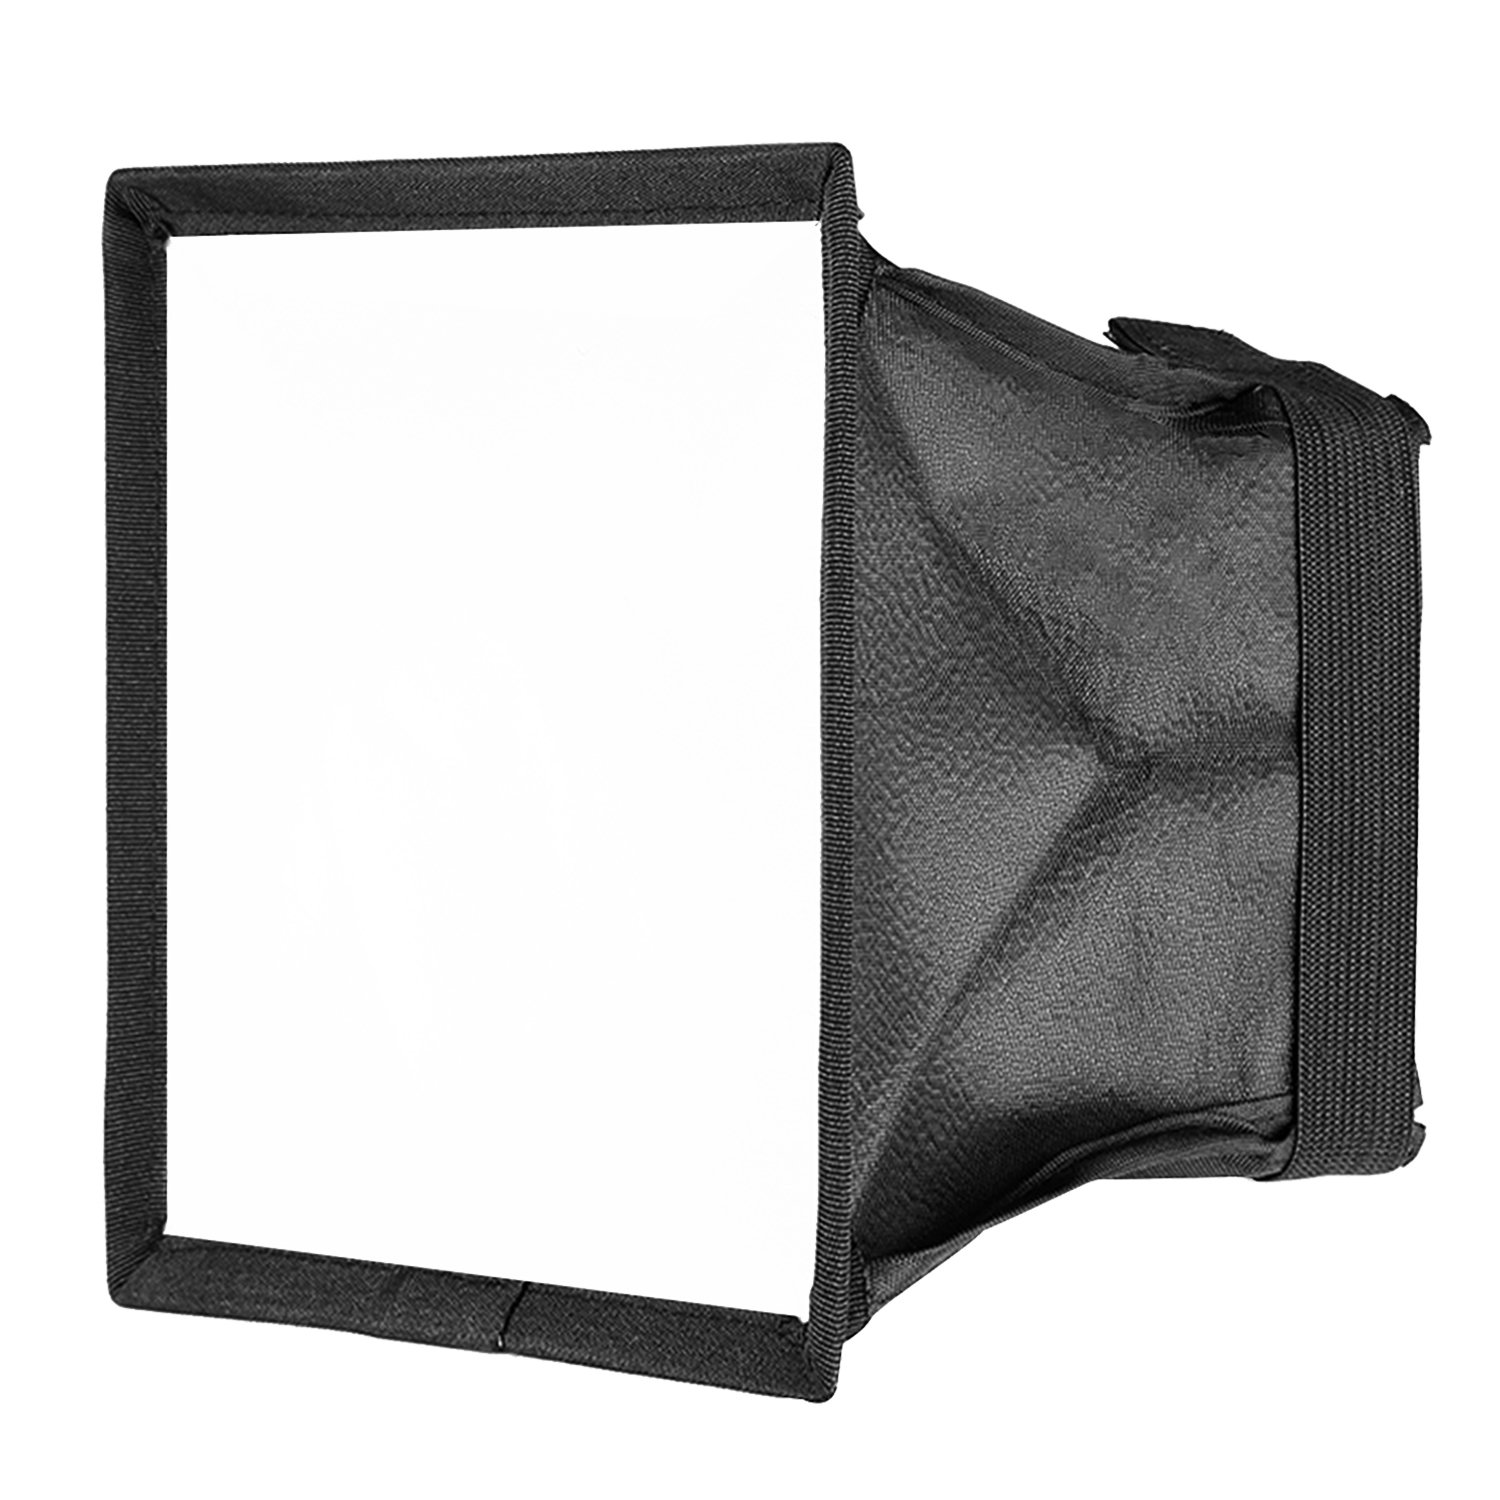 Neewer 5.9x6.7 inches/15x17 centimeters Camera Collapsible..